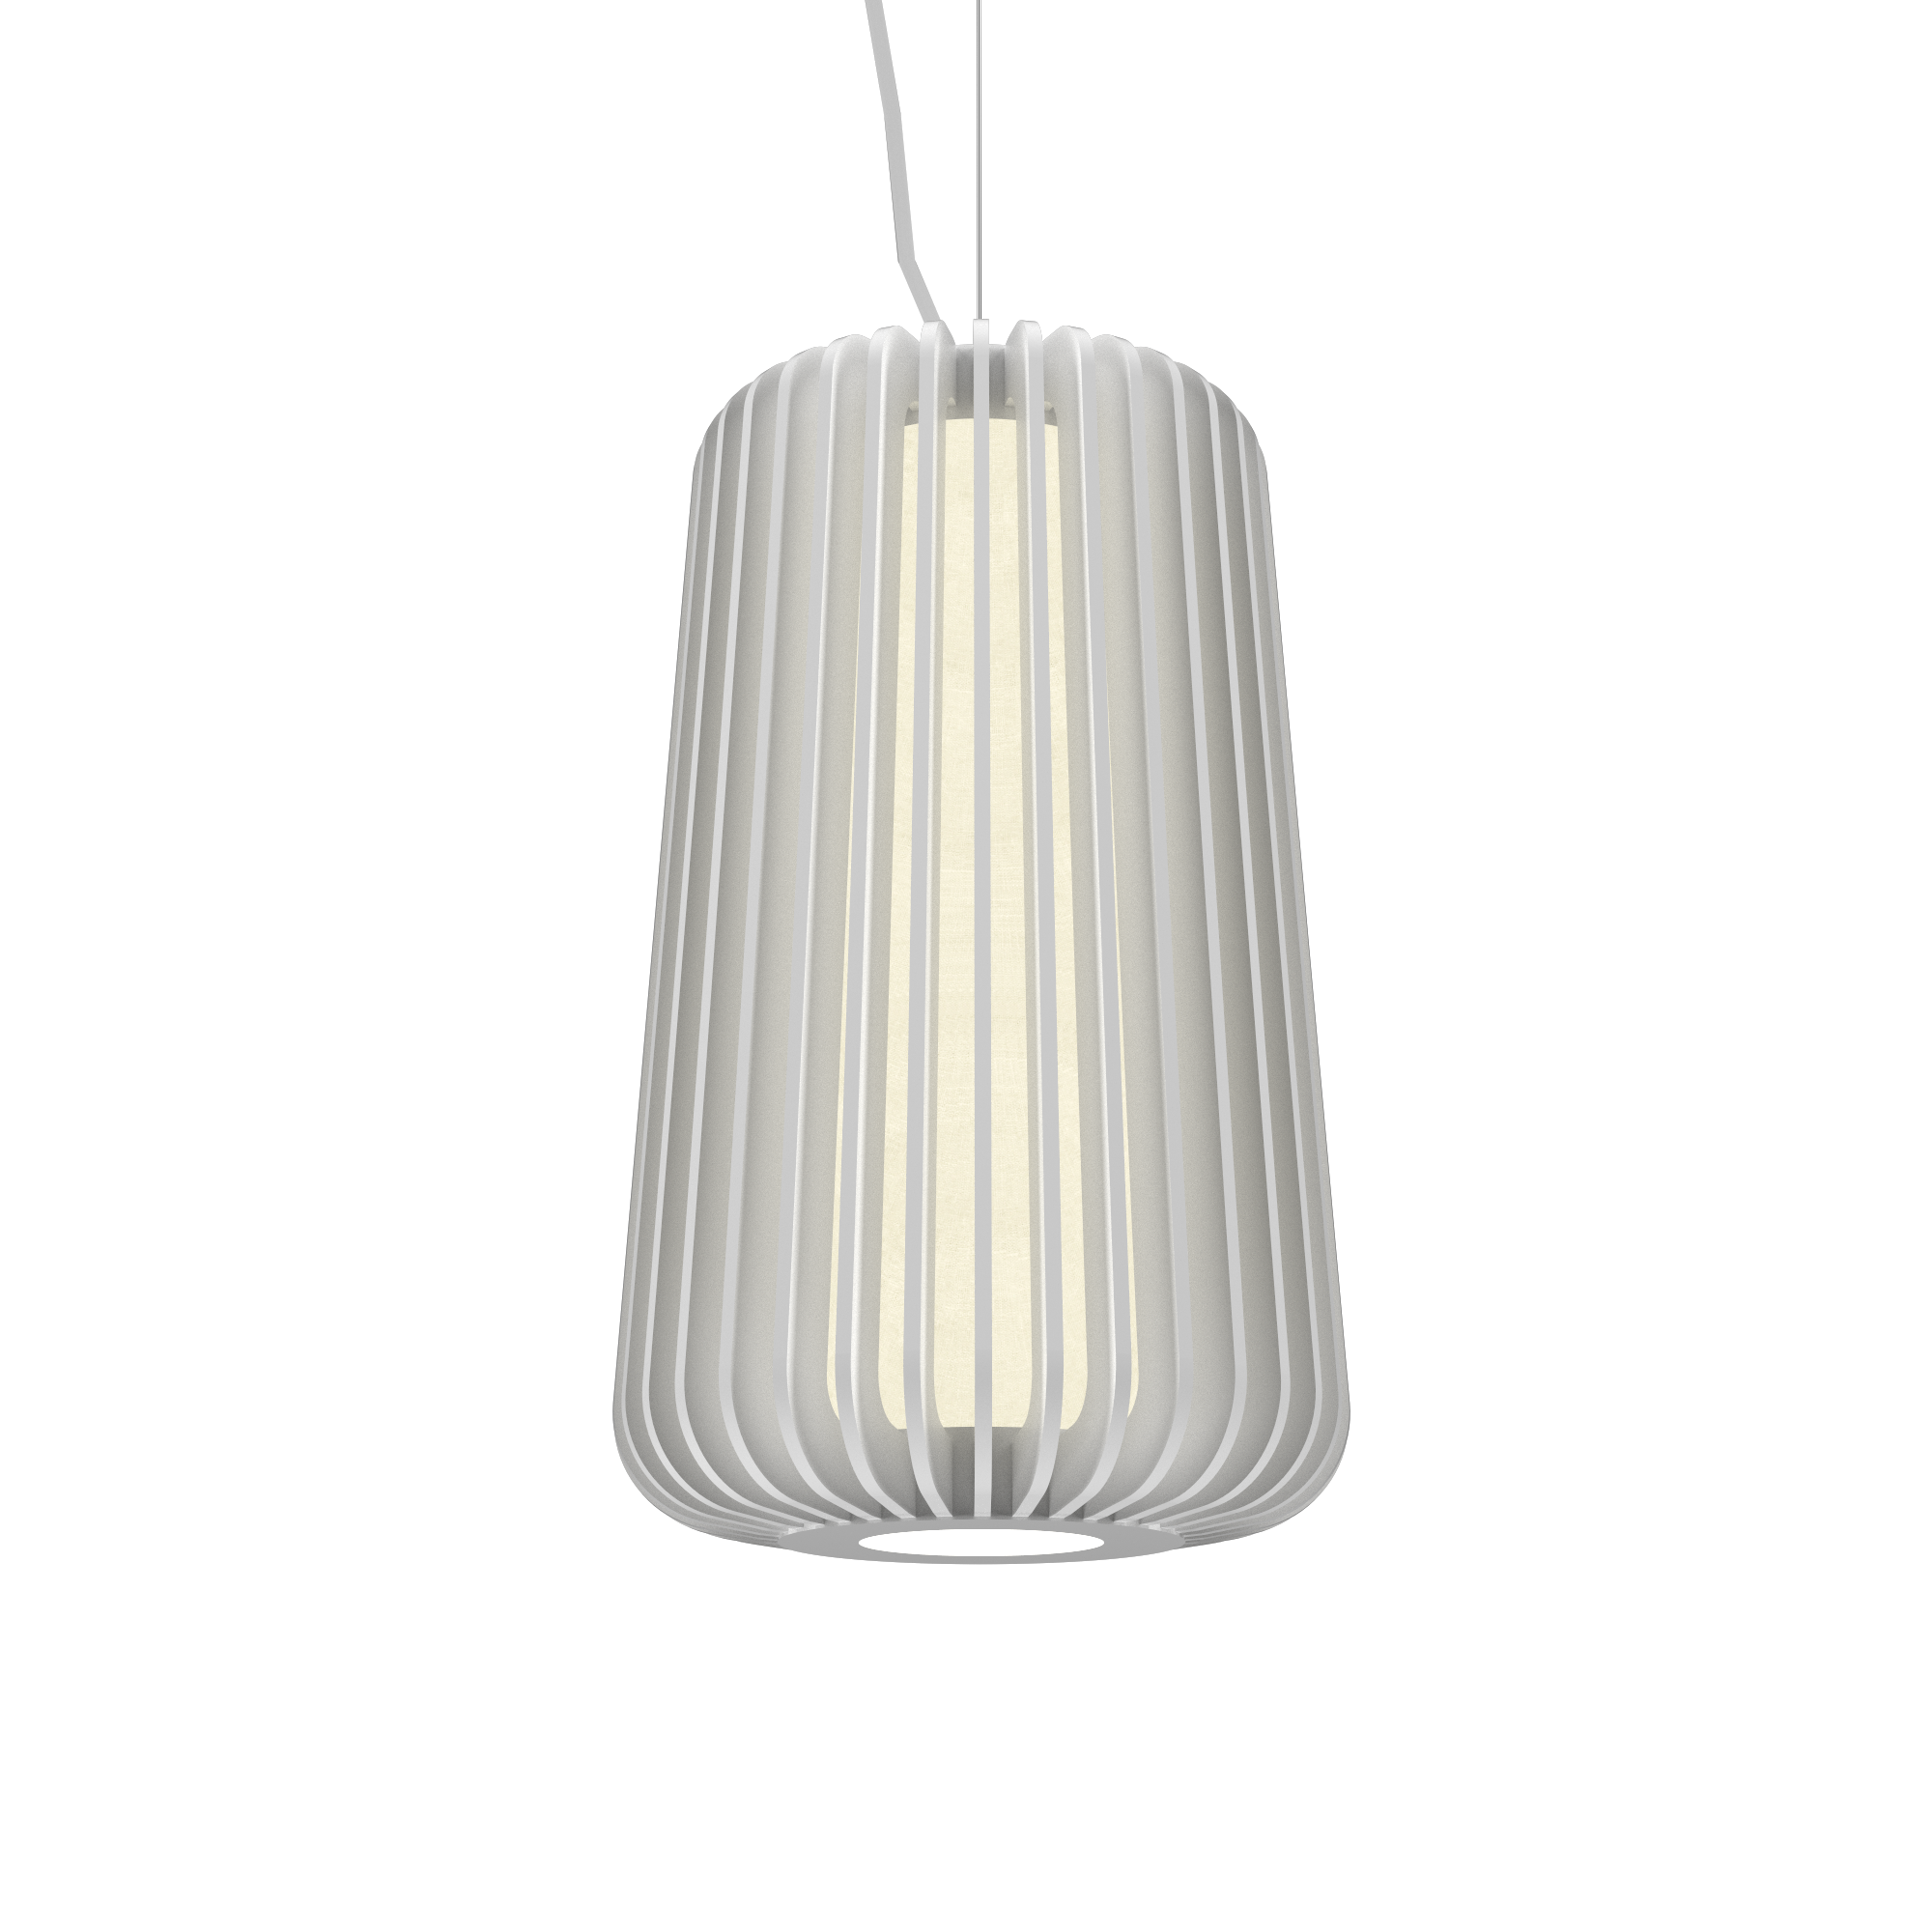 Pendant Lamp Accord Stecche Di Legno 1427 - Stecche Di Legno Line Accord Lighting | 07. White